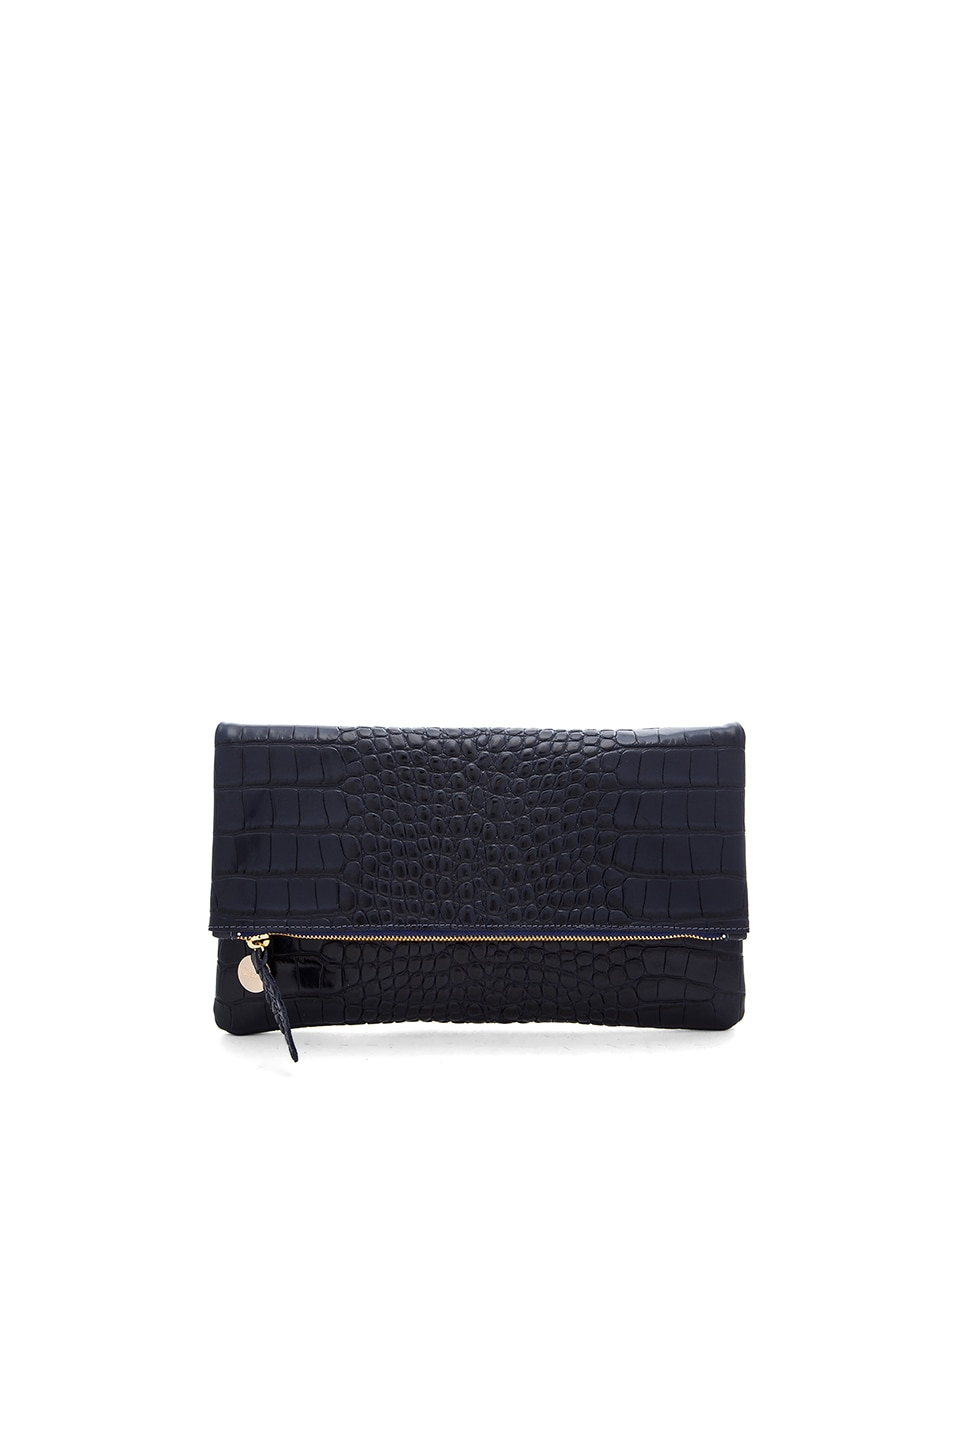 Clare V. Foldover Supreme Clutch in Ink Croco